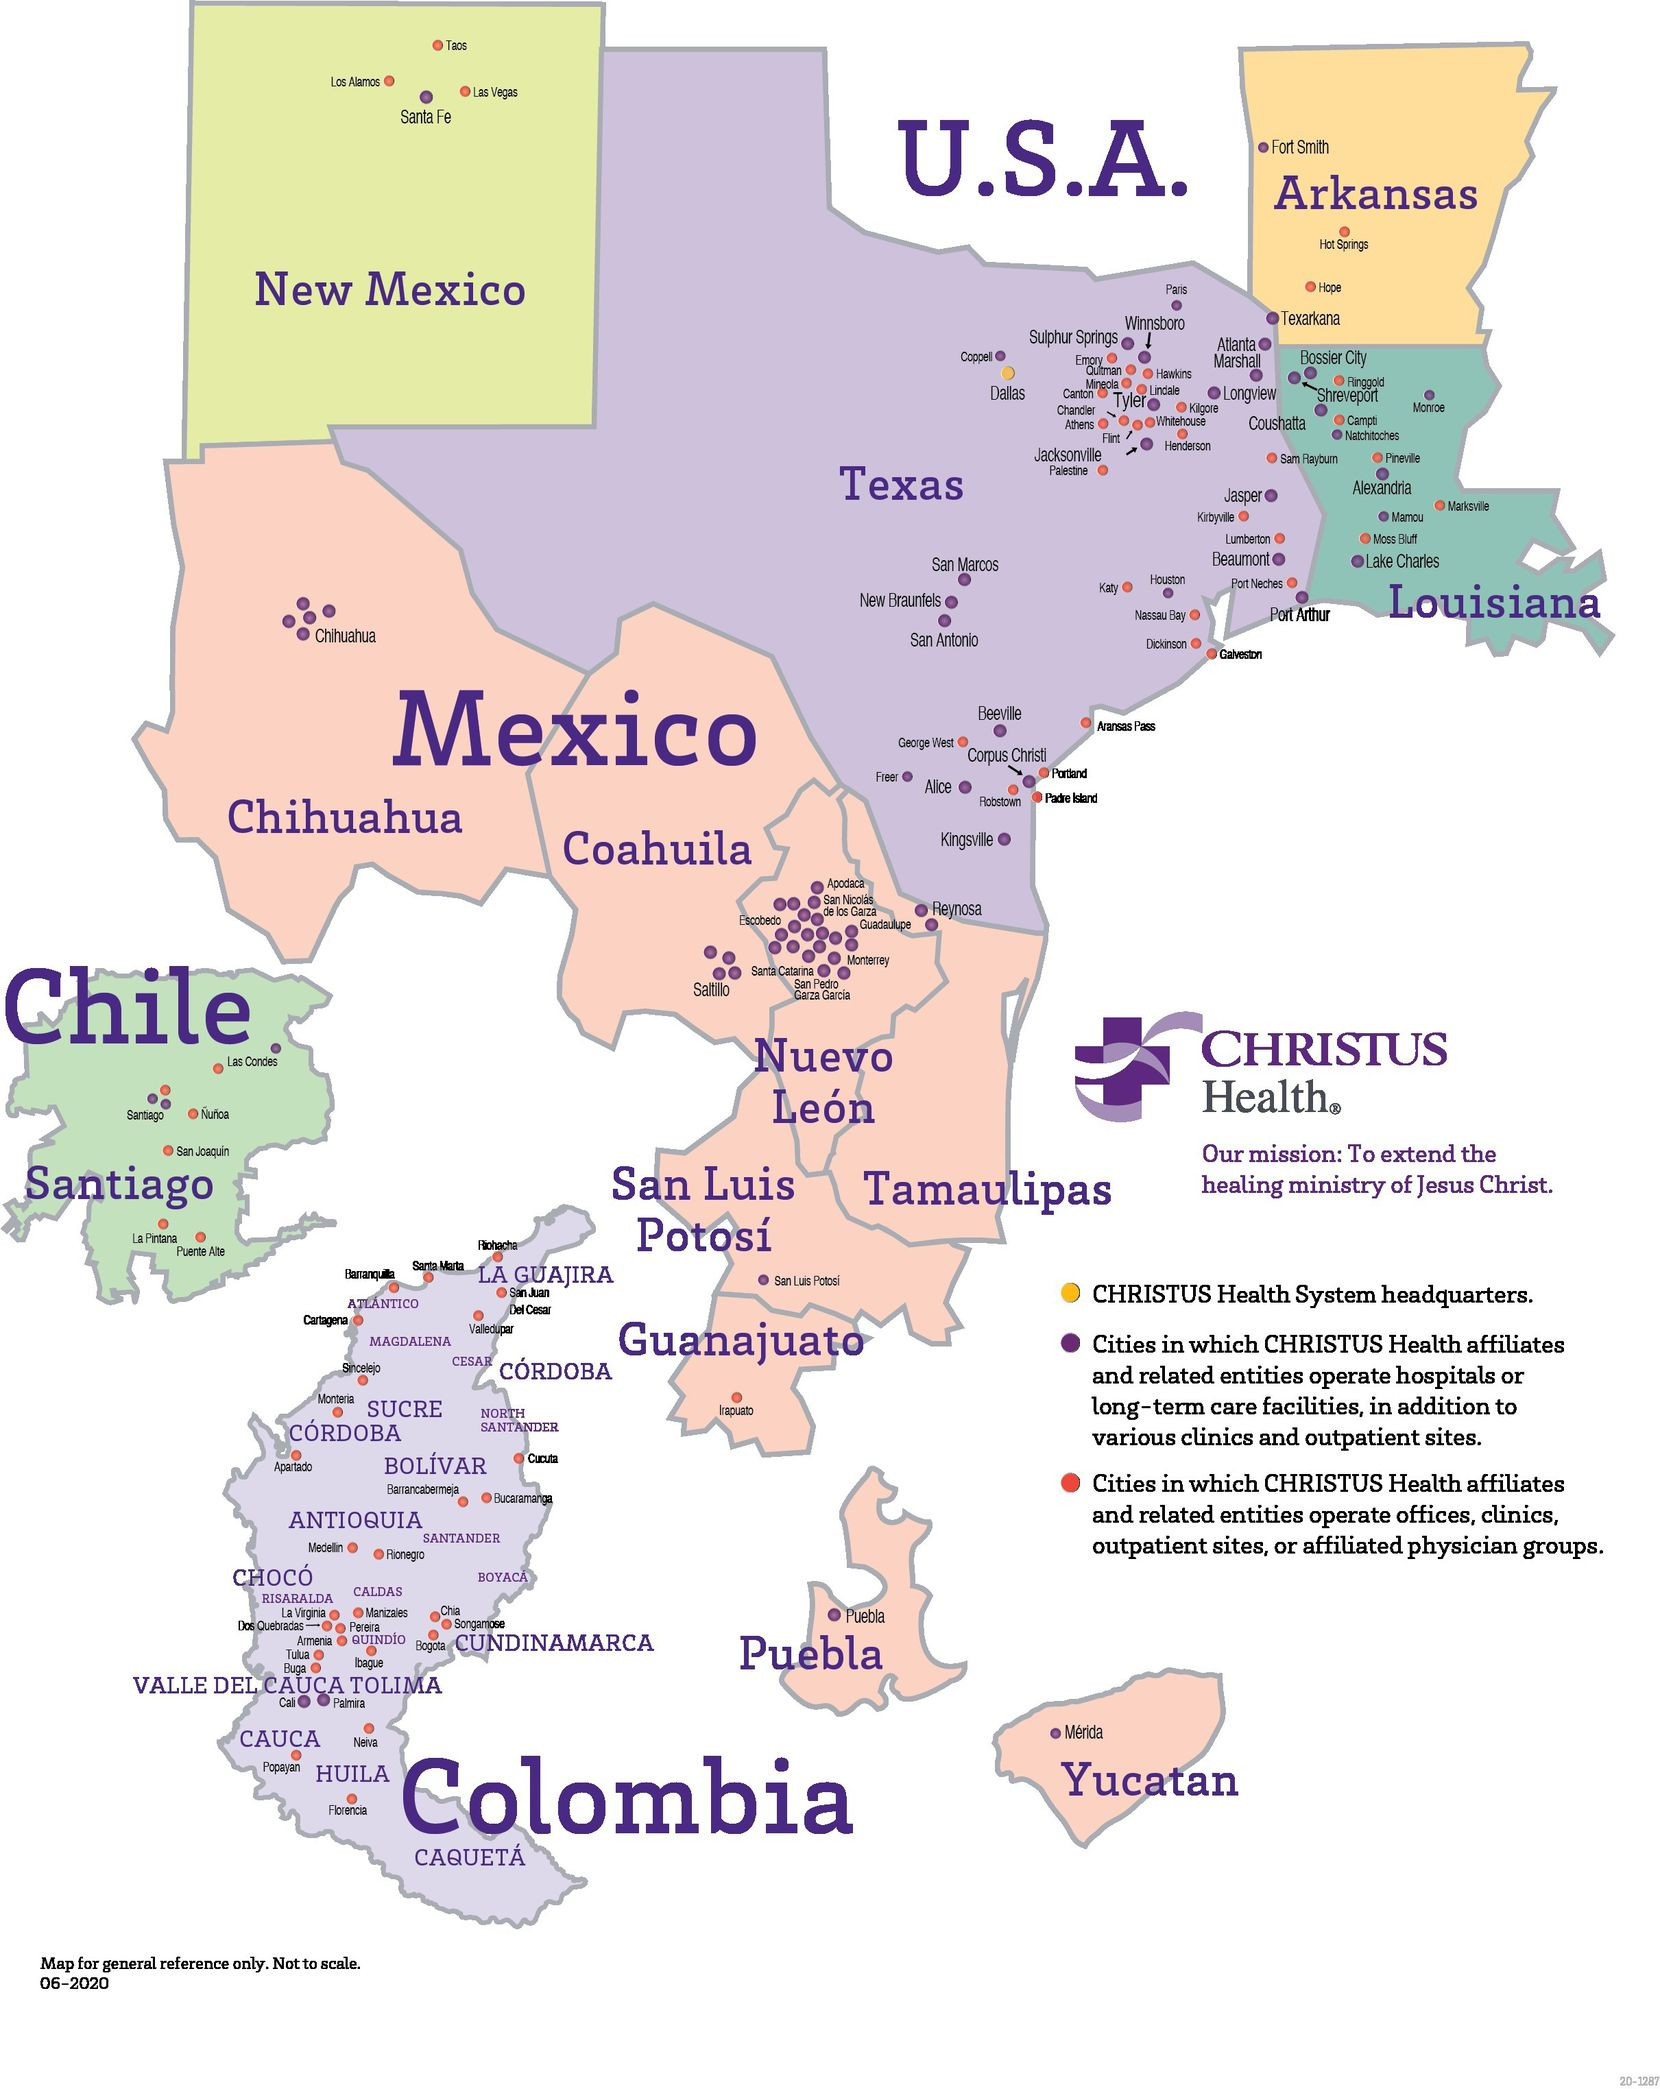 Christus Health is a Catholic, not-for-profit healthcare system with over 600 centers in the U.S, Mexico, Chile and Colombia.